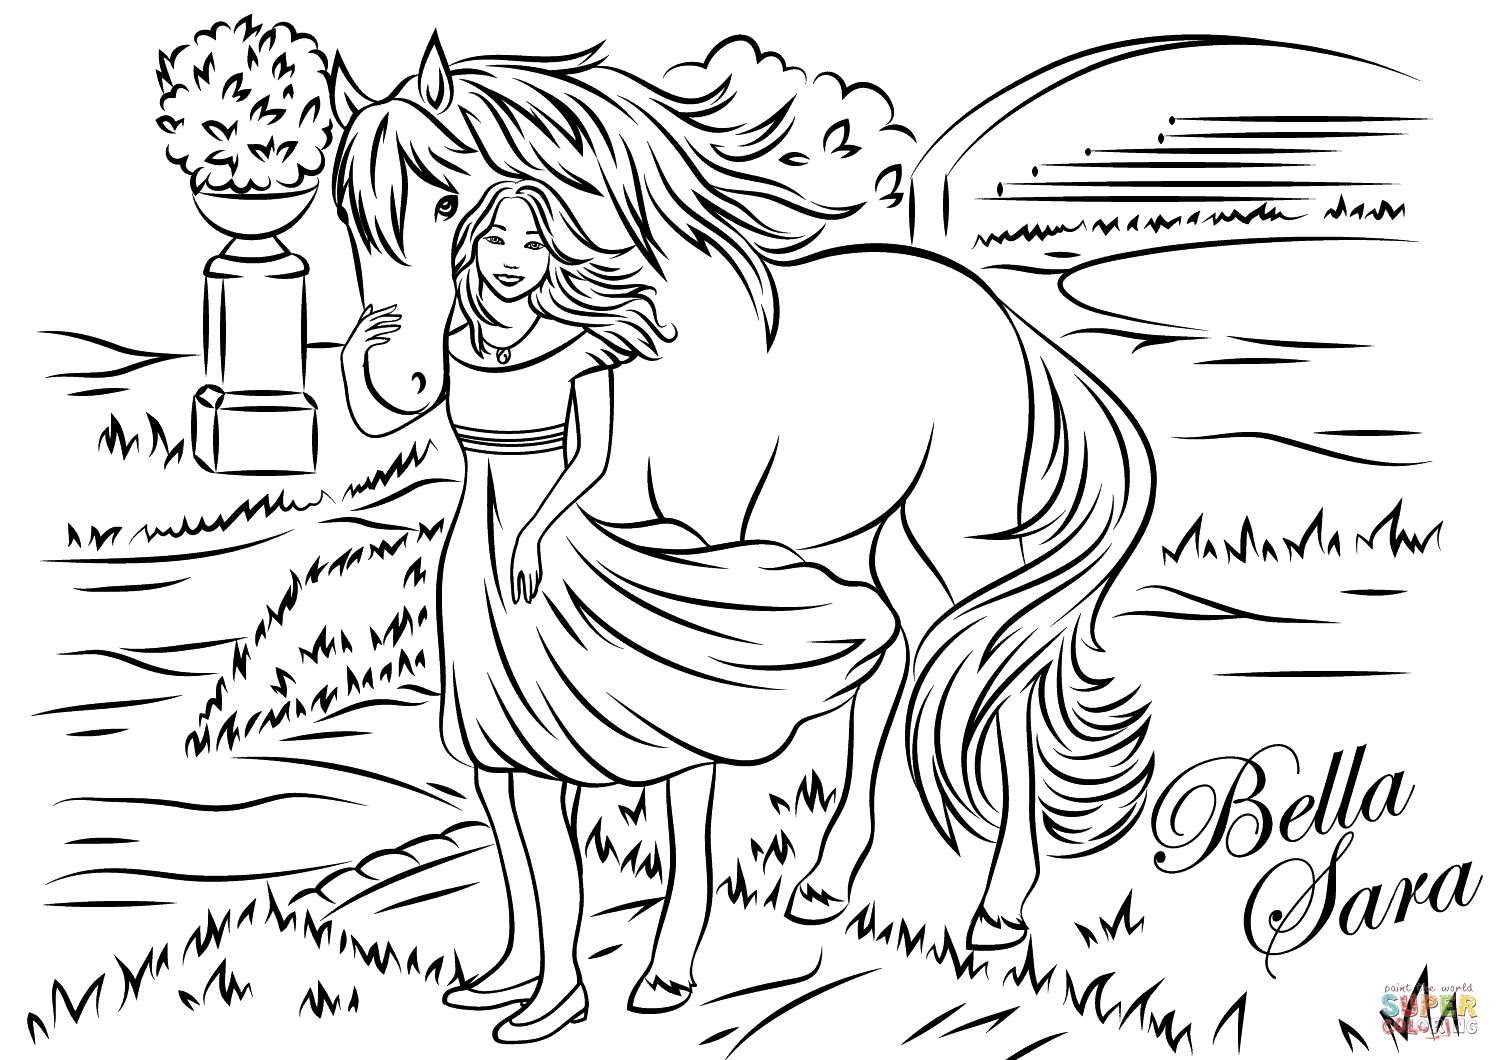 Bella Sara | Animal coloring pages, Horse coloring pages, Coloring ... | 1060x1500